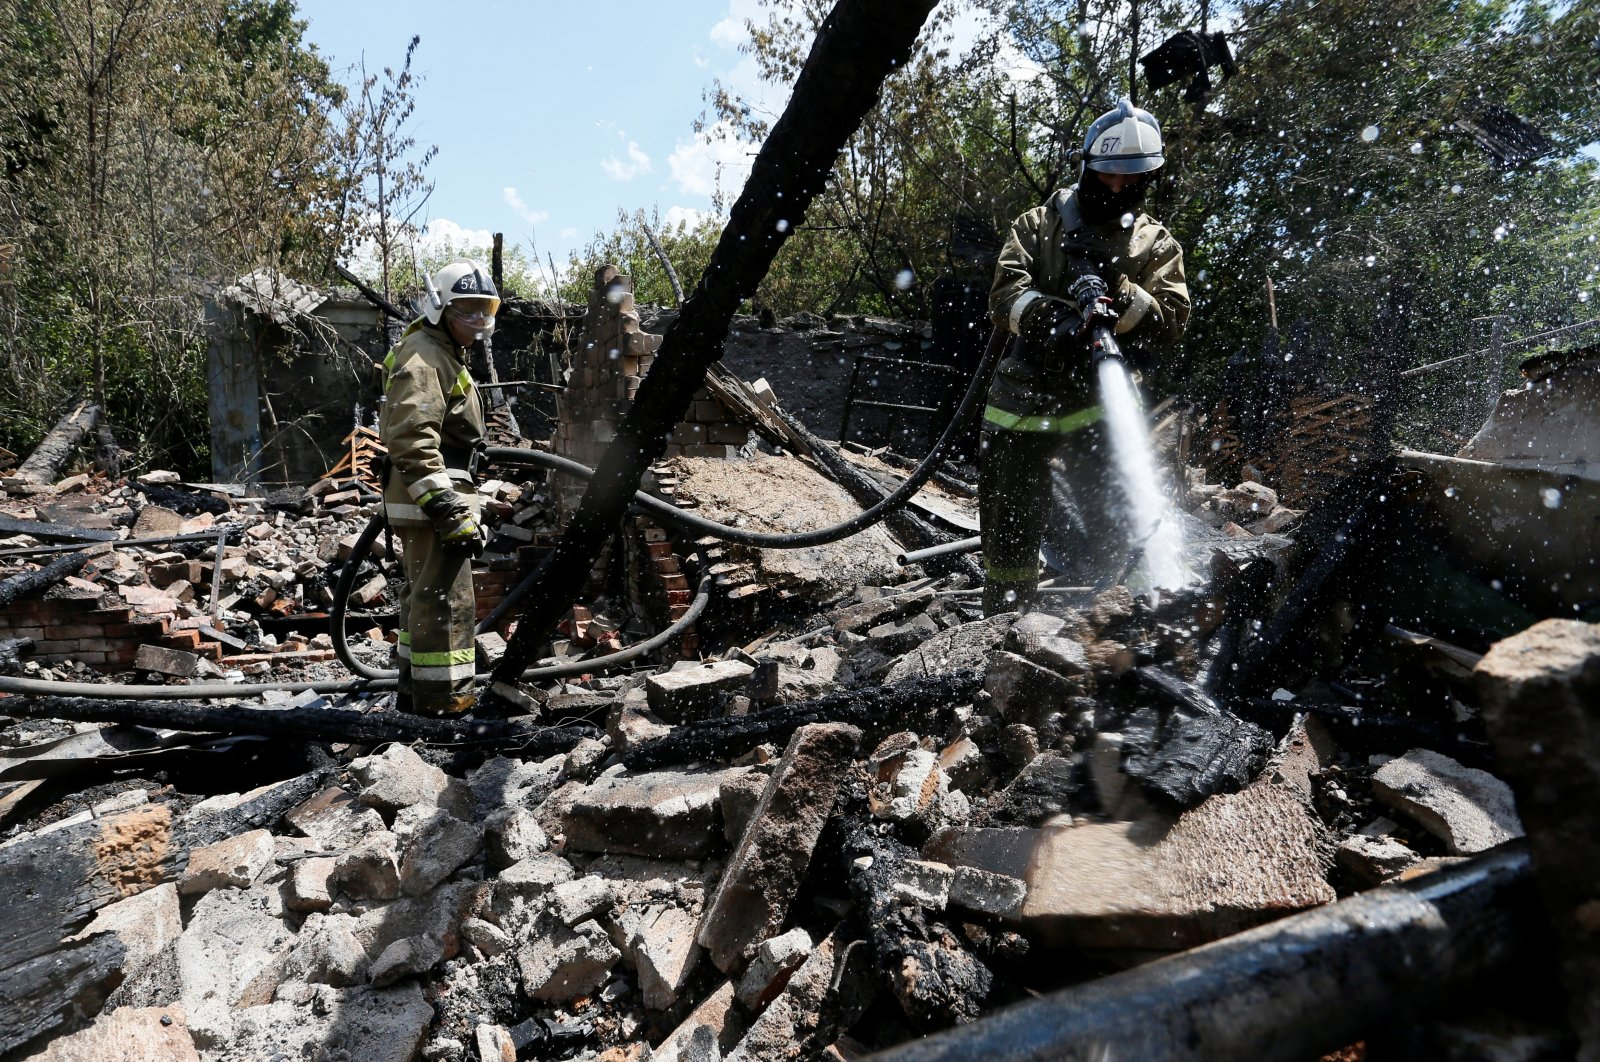 Firefighters work at the ruins of a house, which locals said was destroyed during a recent shelling, in the rebel-controlled city of Donetsk, Ukraine, July 22, 2020. (Reuters Photo)